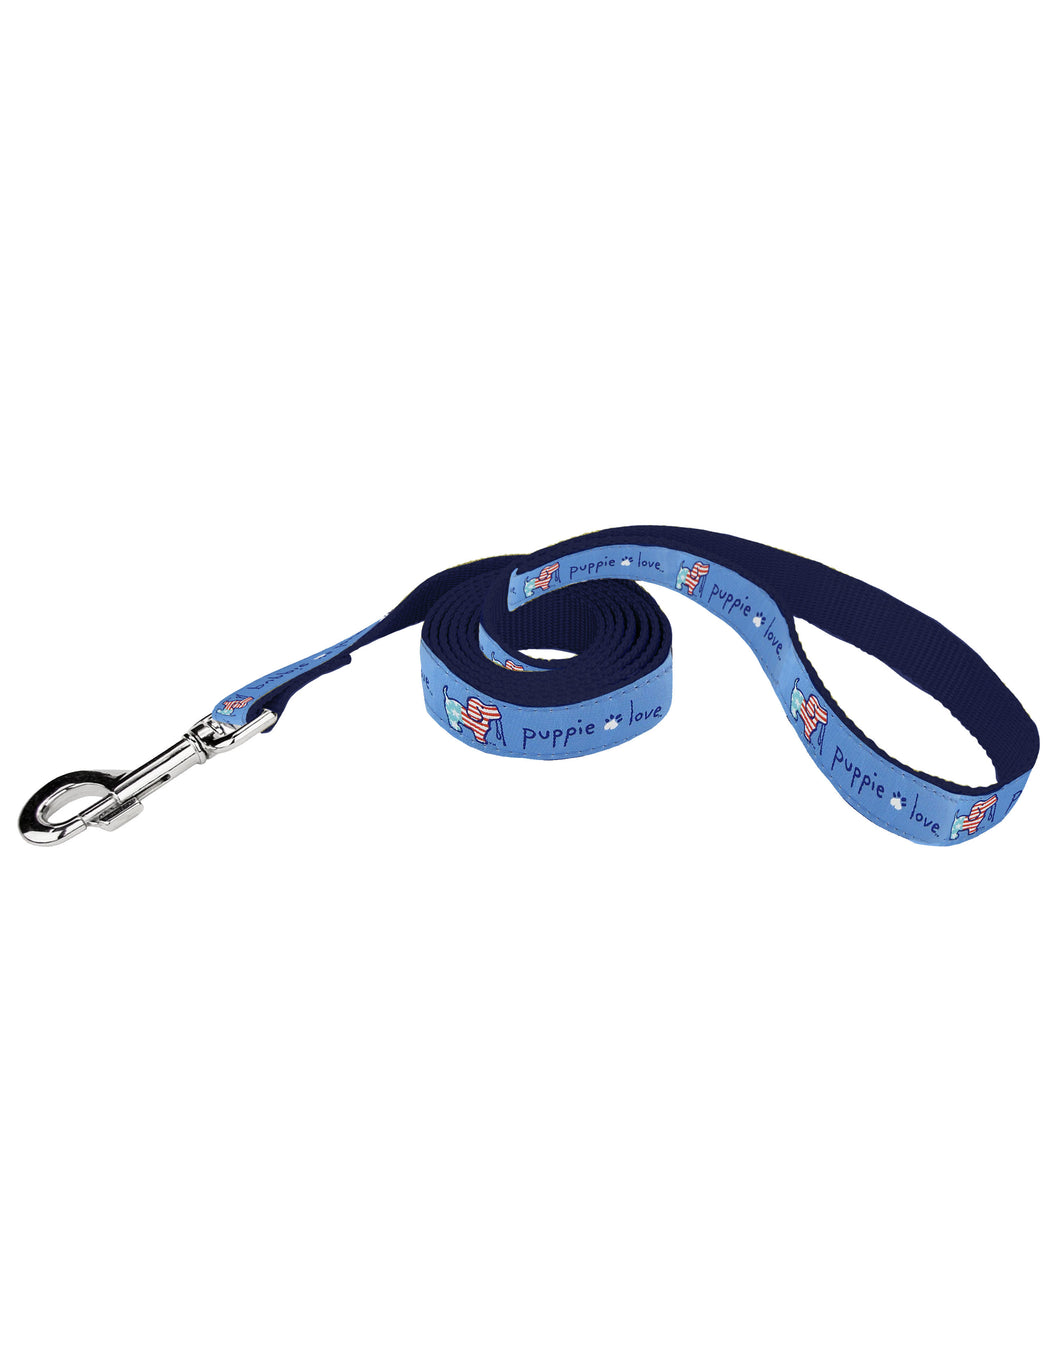 Puppie Love - 4ft Leash